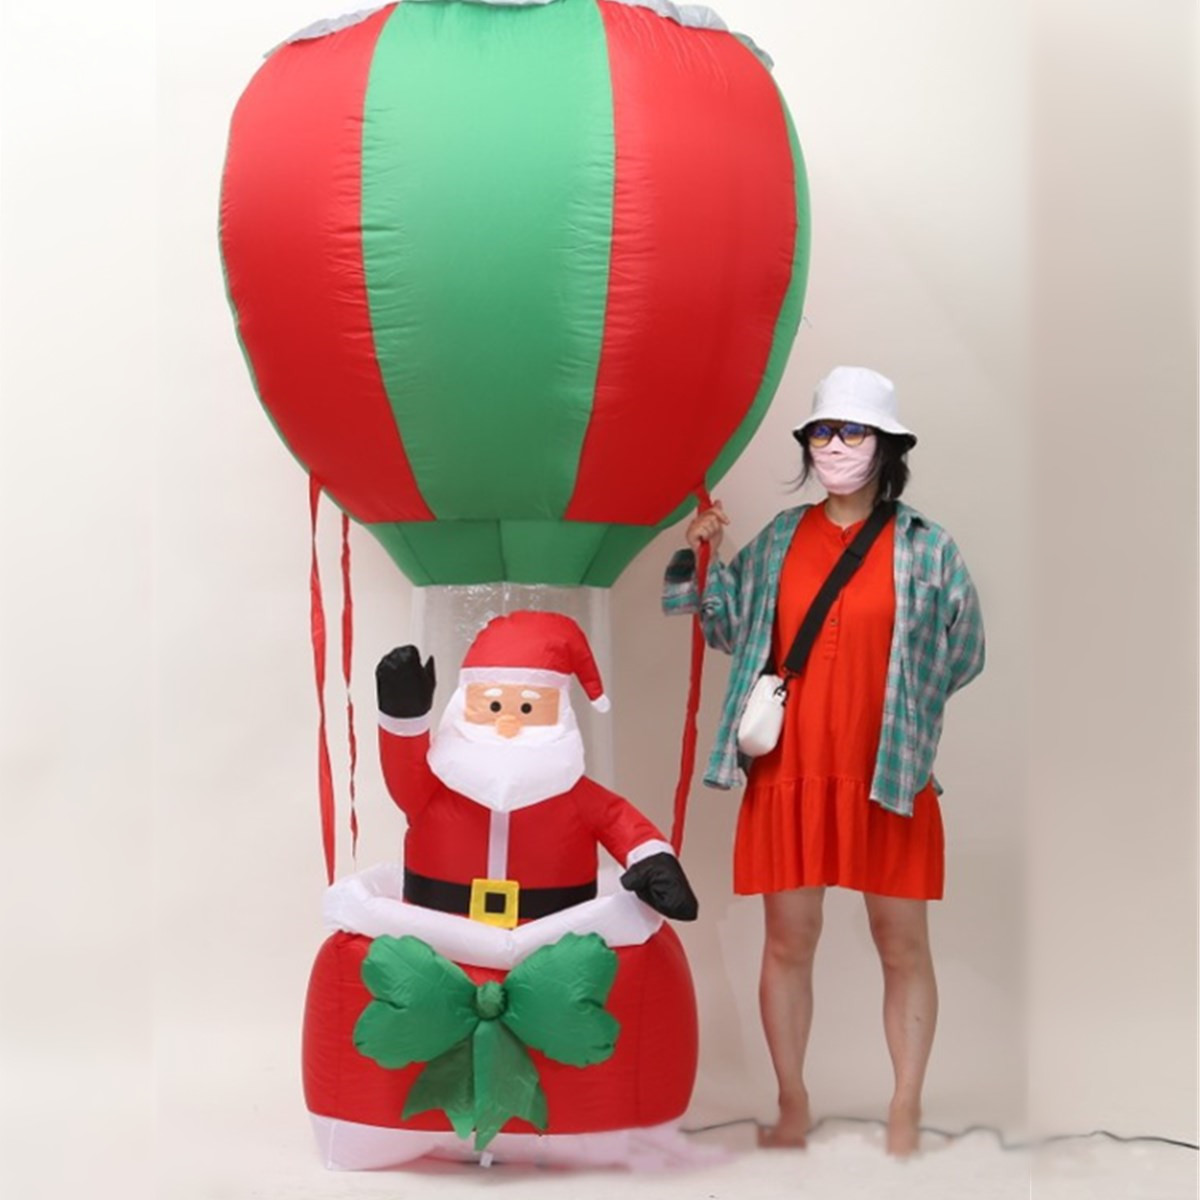 2.4M Air Inflatable Santa Claus Snowman hot air balloon Outdoor Airblown Christmas Decoration Figure Kids Classic Toys x085 hot sell giant 4 m christmas inflatable snowman for christmas decoration with air blower